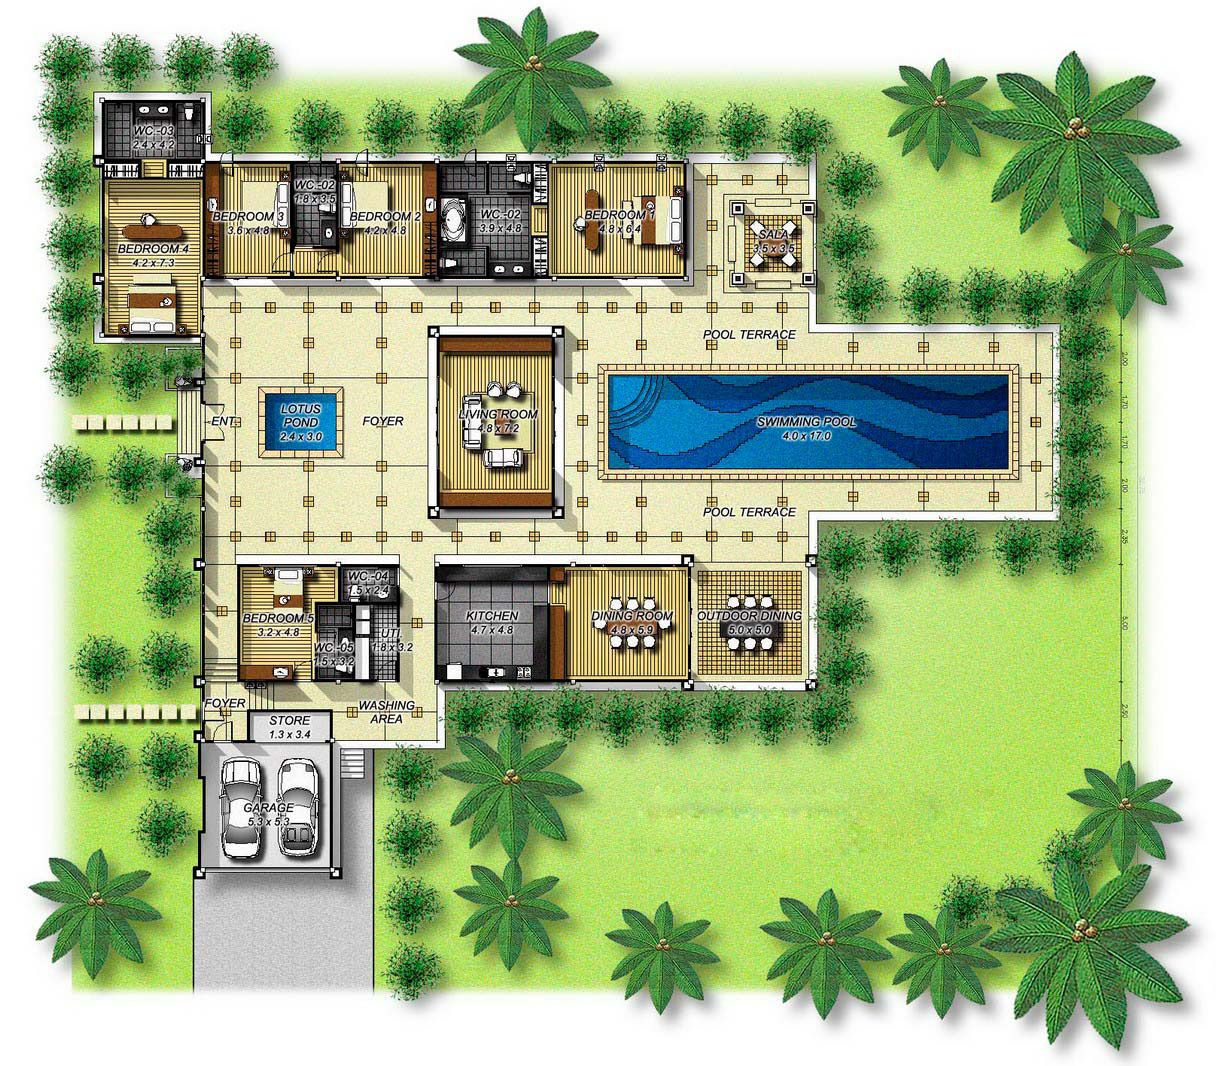 House plans with courtyards in the center central Pool house floor plans free